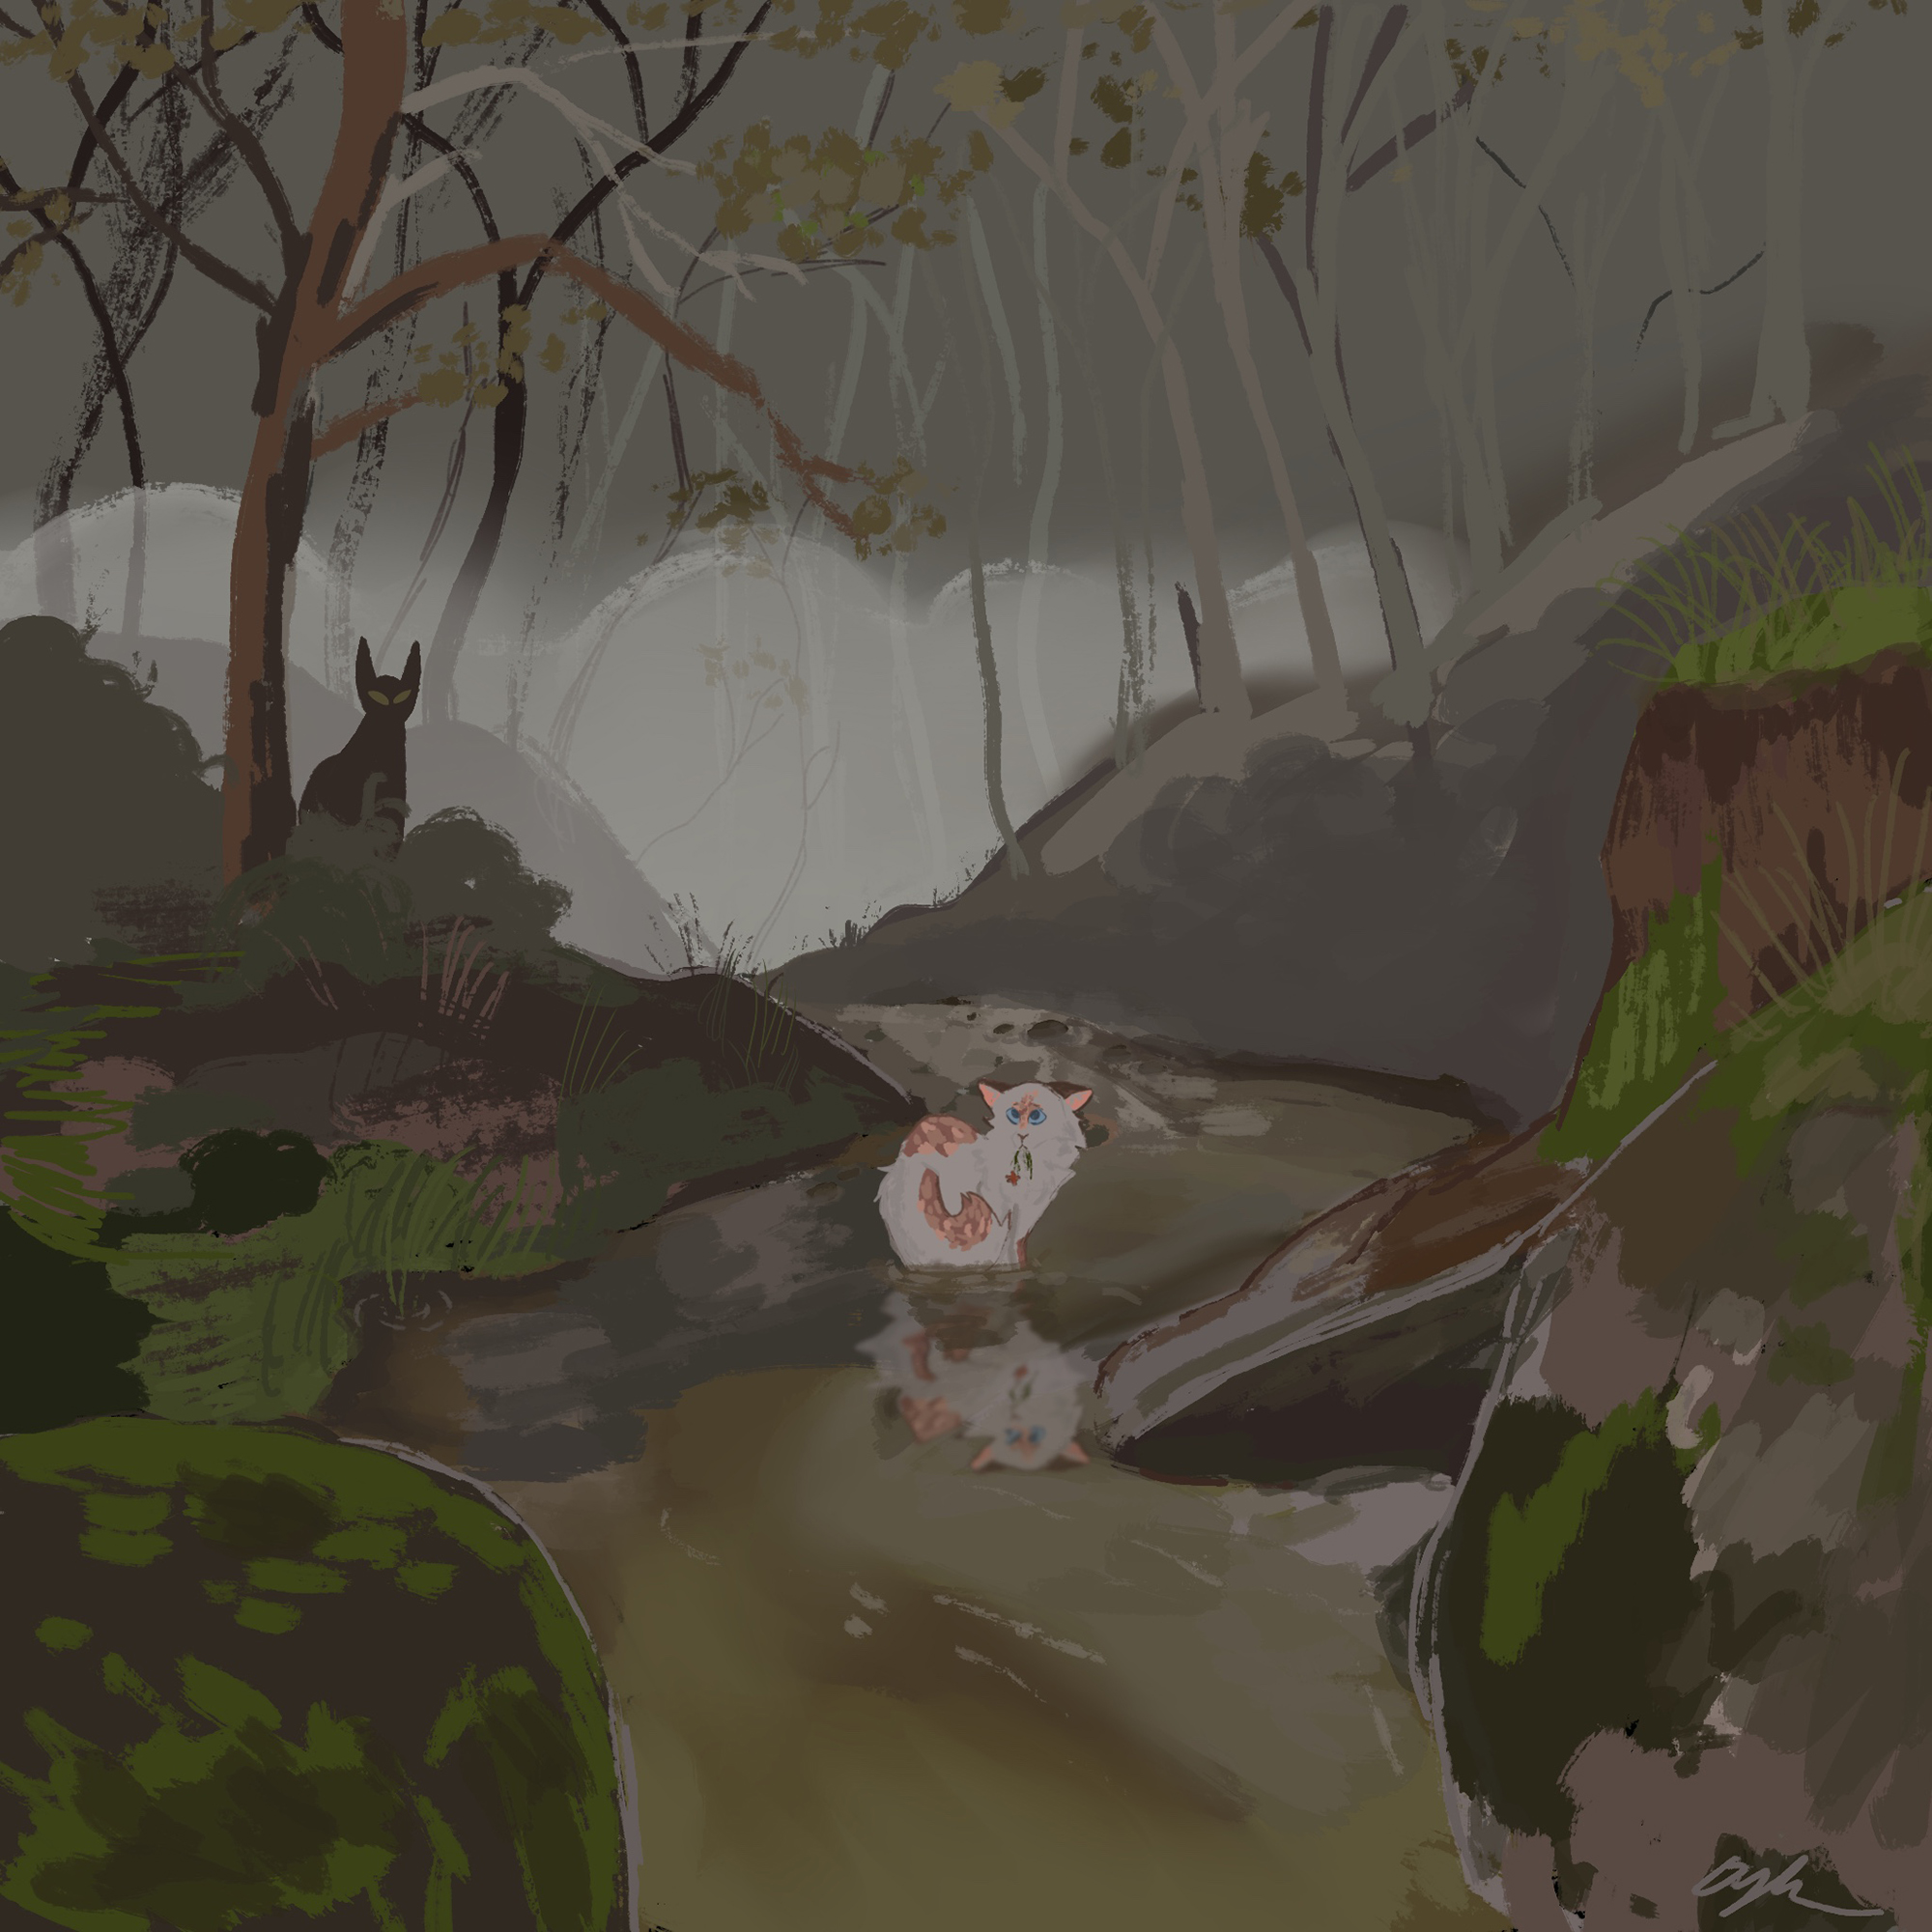 Award of Excellence. Dylan Gibson, Foggy Mornings (digital painting)